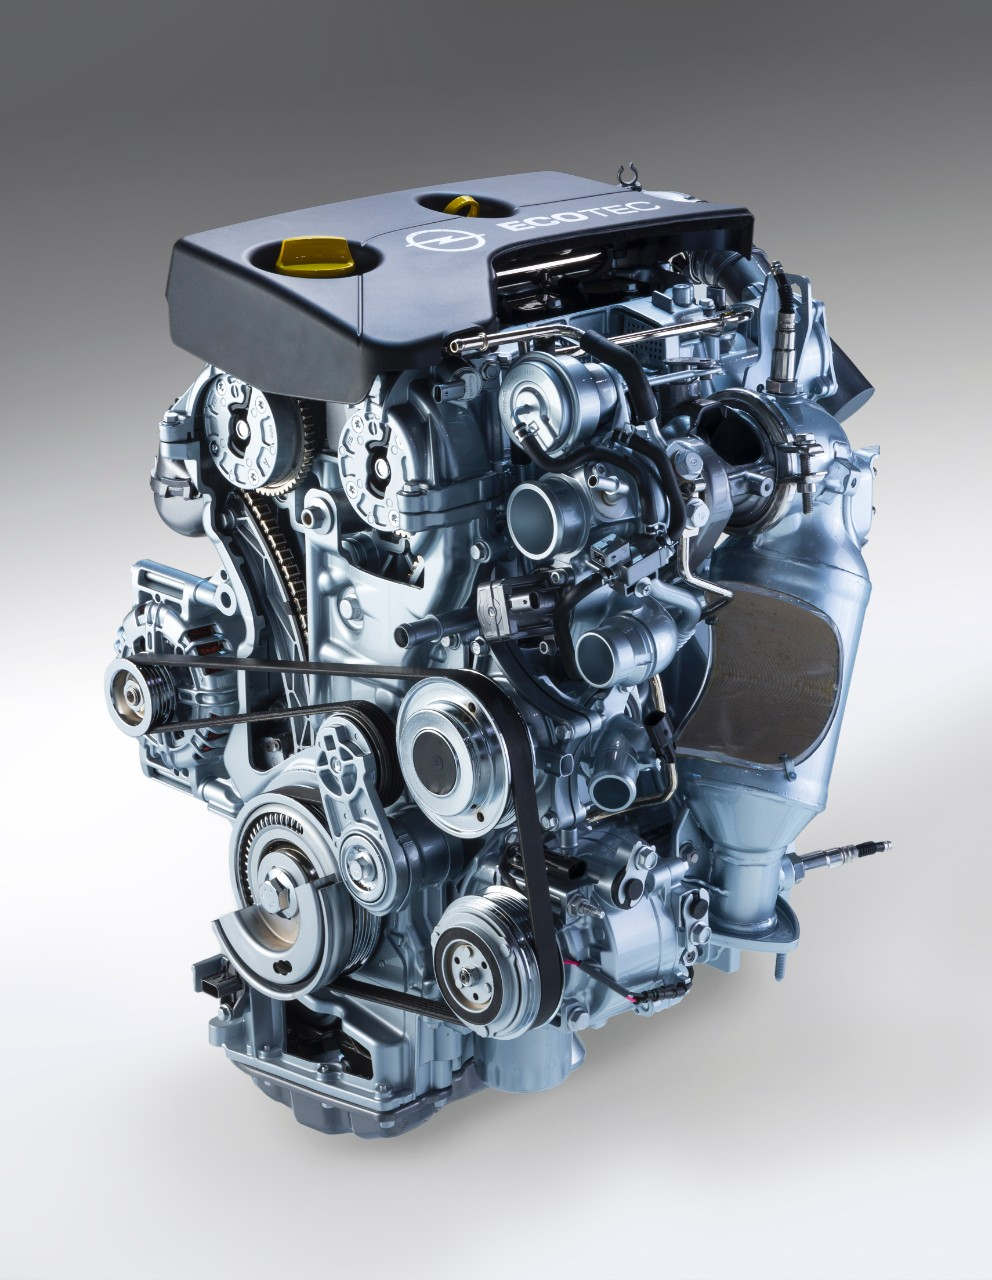 New Ecotec 1.0l Turbo engine